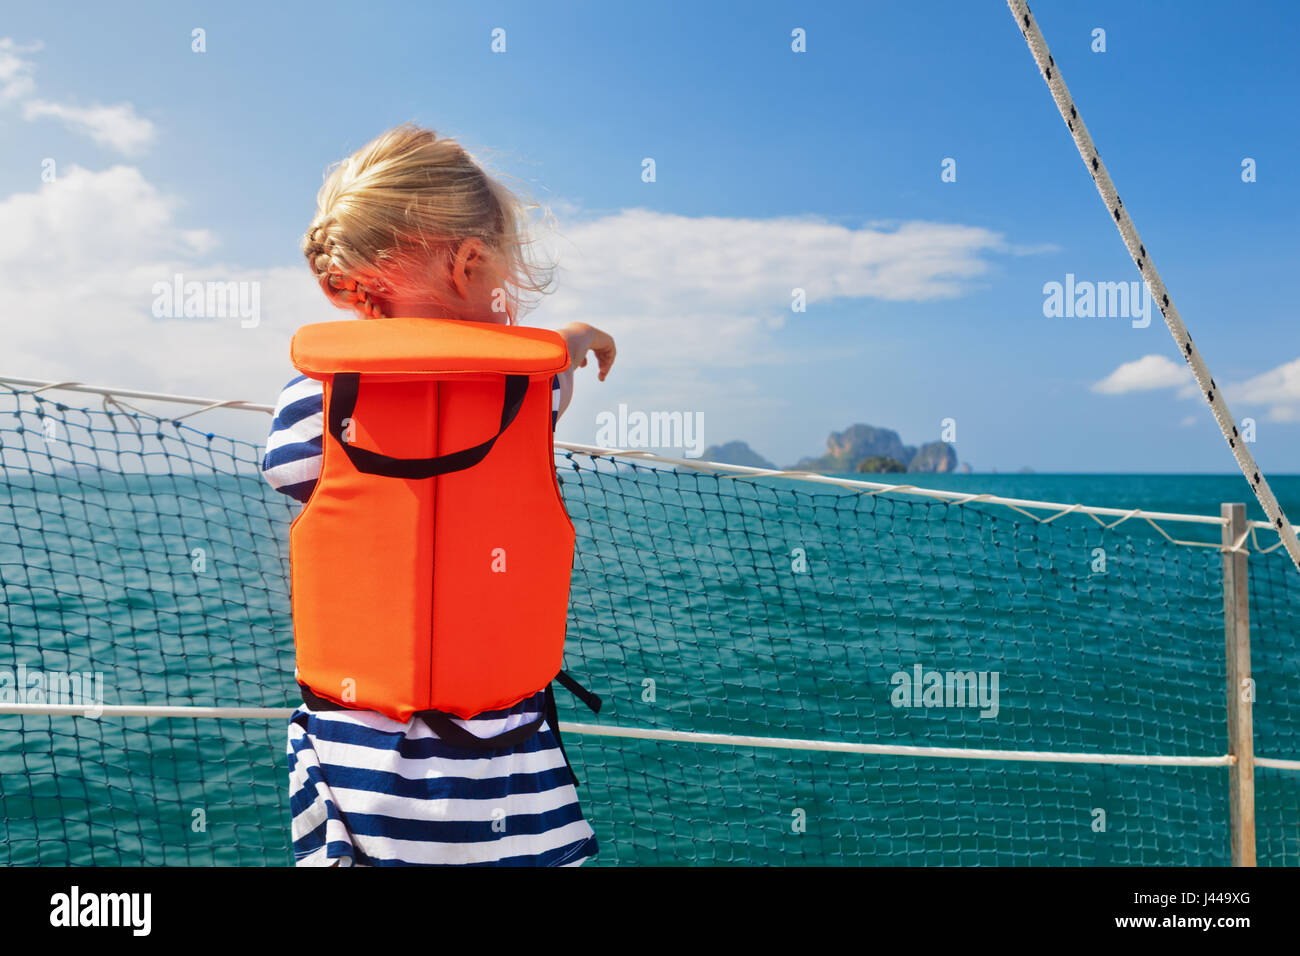 Happy little baby in life jacket on board of sailing boat watching offshore sea and tropical islands on summer cruise. - Stock Image